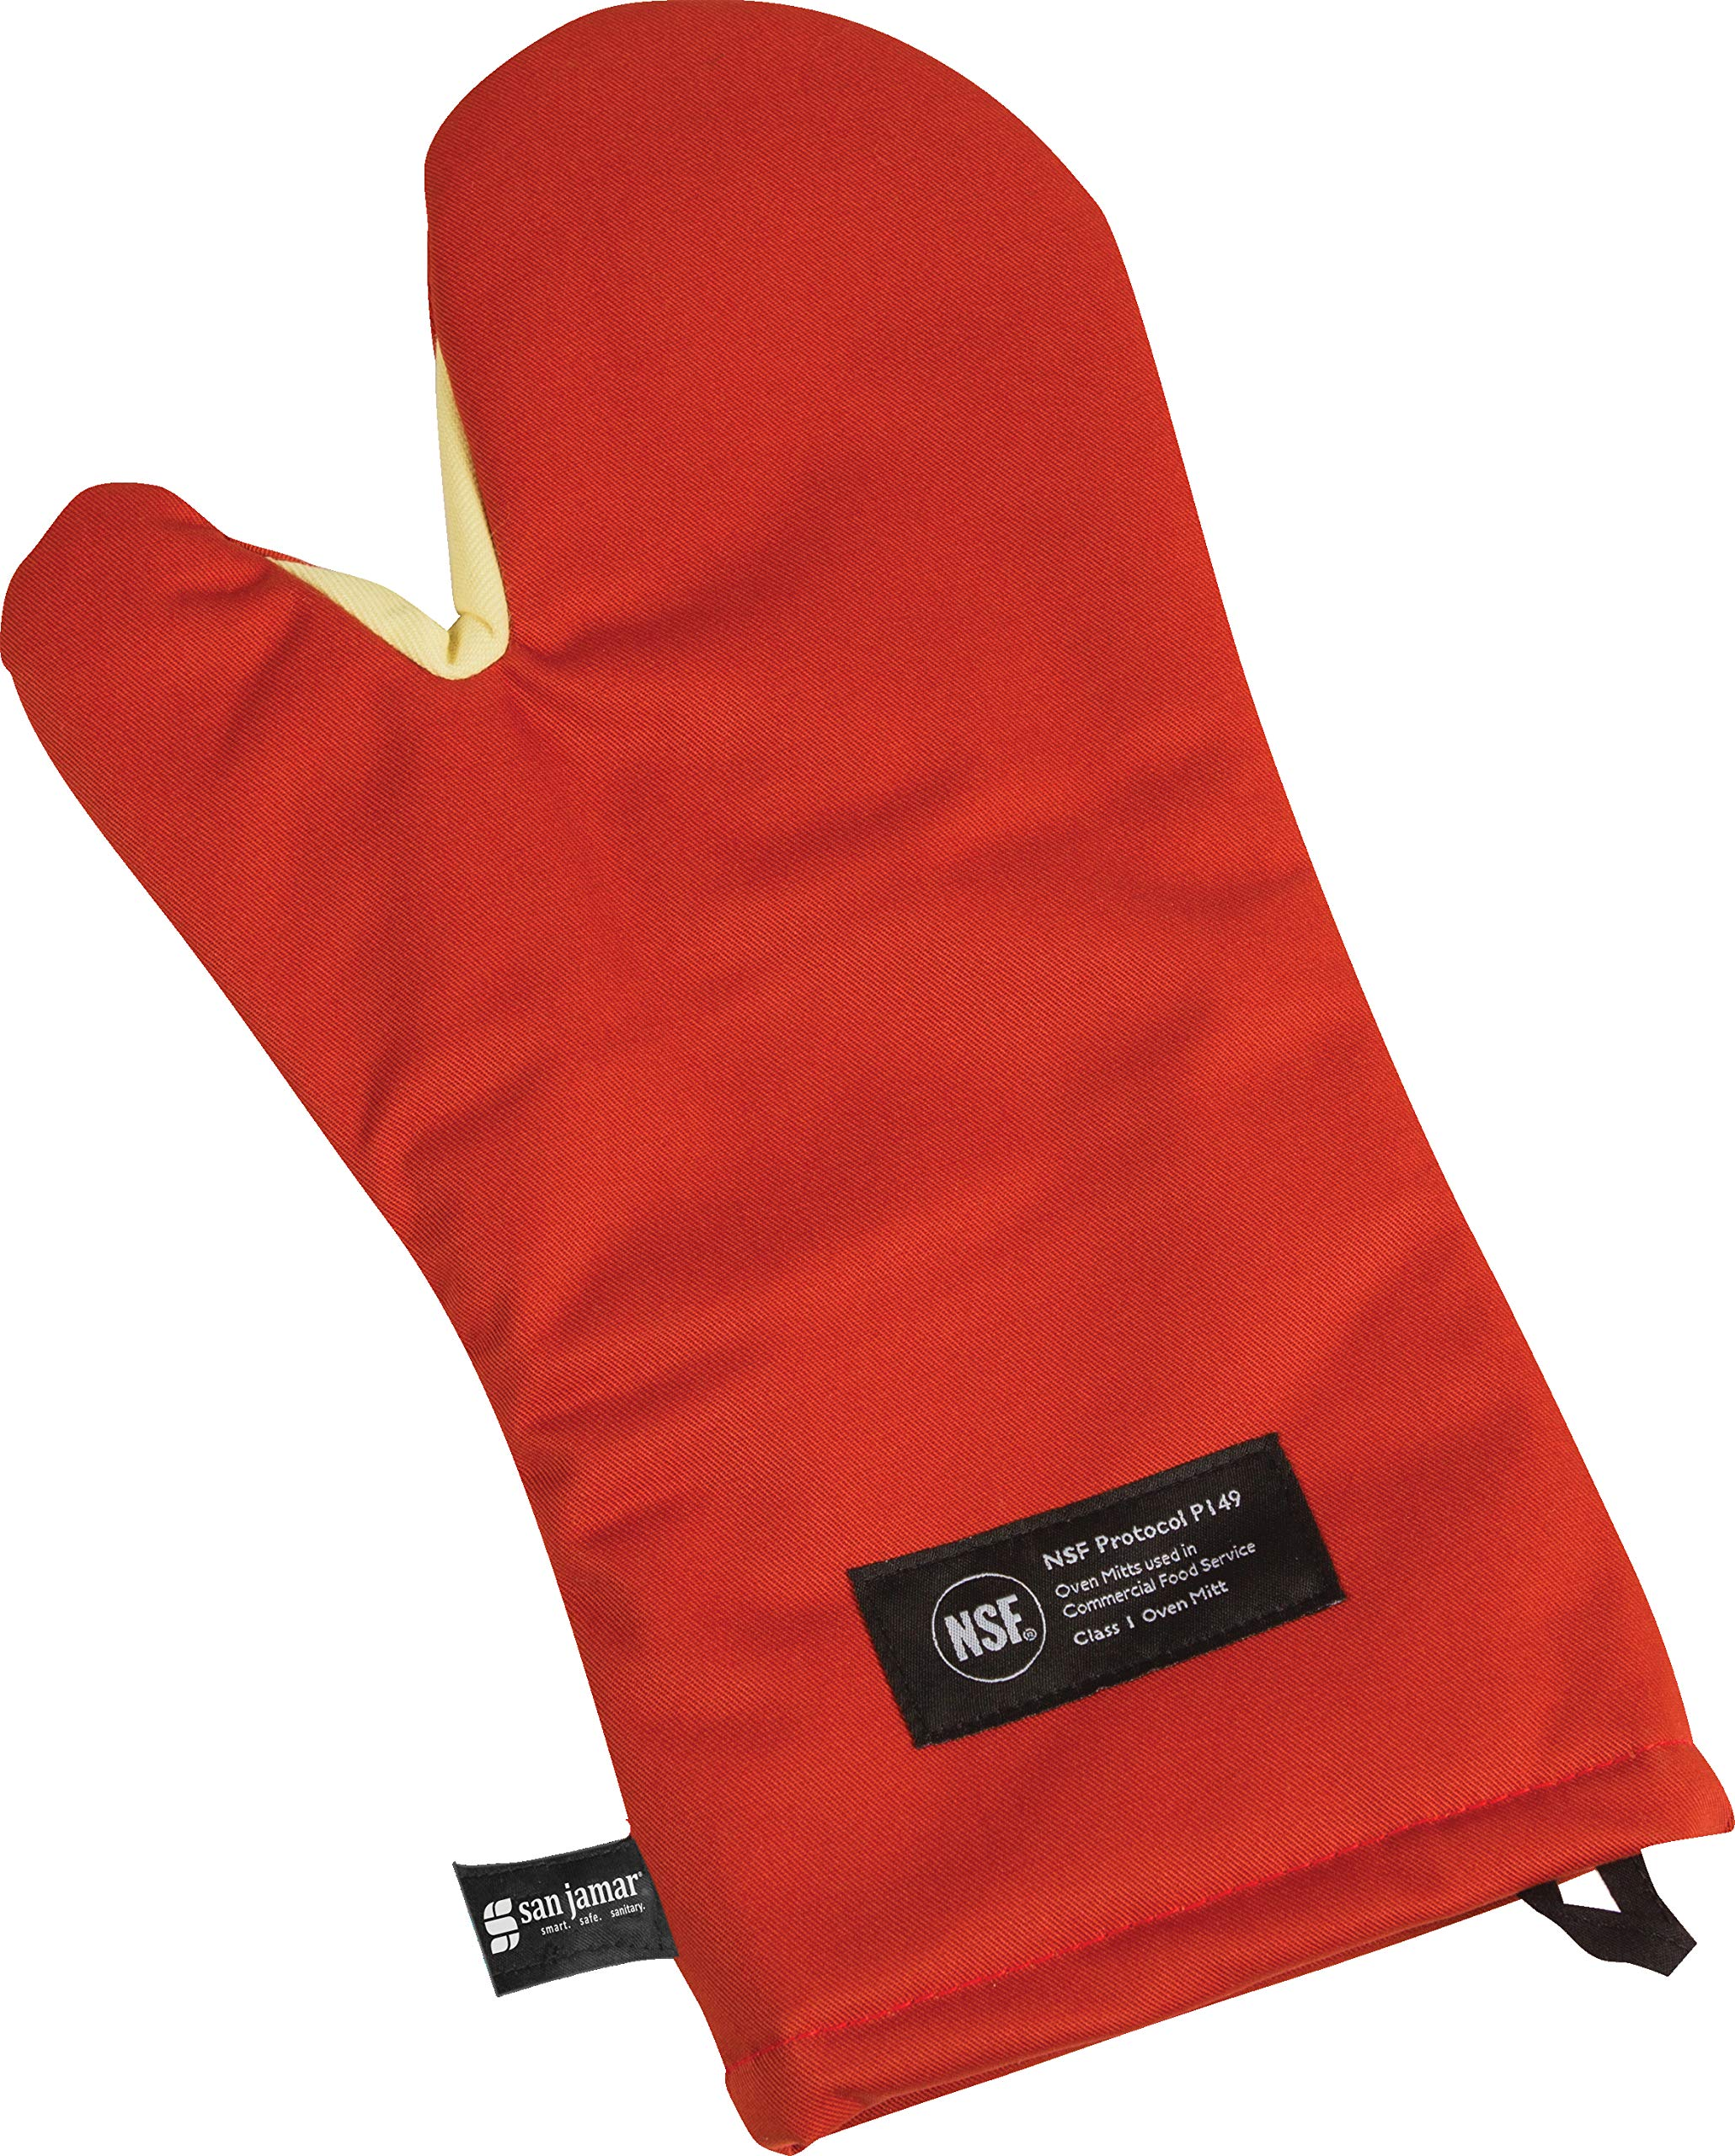 San Jamar CTC17 Cool Touch Conventional Oven Mitt Heat Protection up to 500° F, 17'' Length, Red by San Jamar